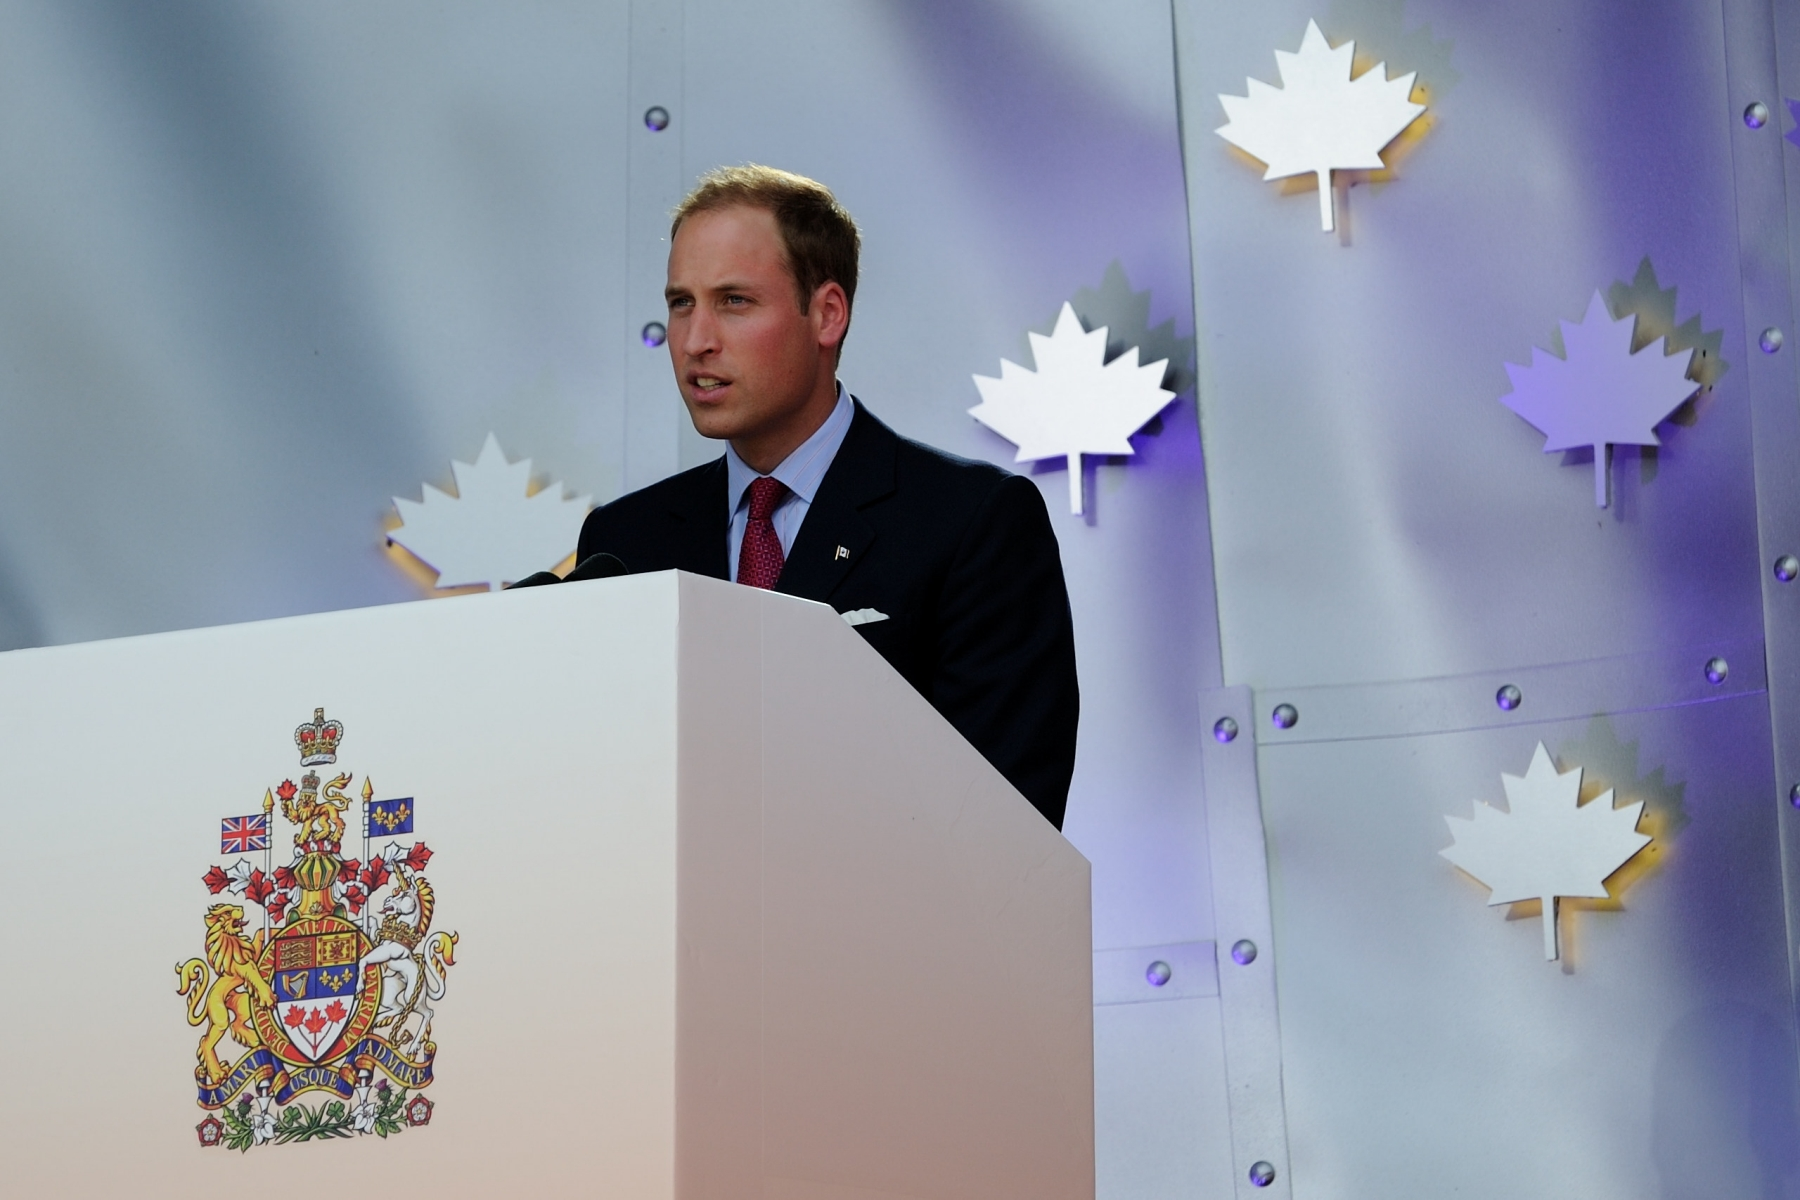 On this special occasion, His Royal Highness addressed Canadians.